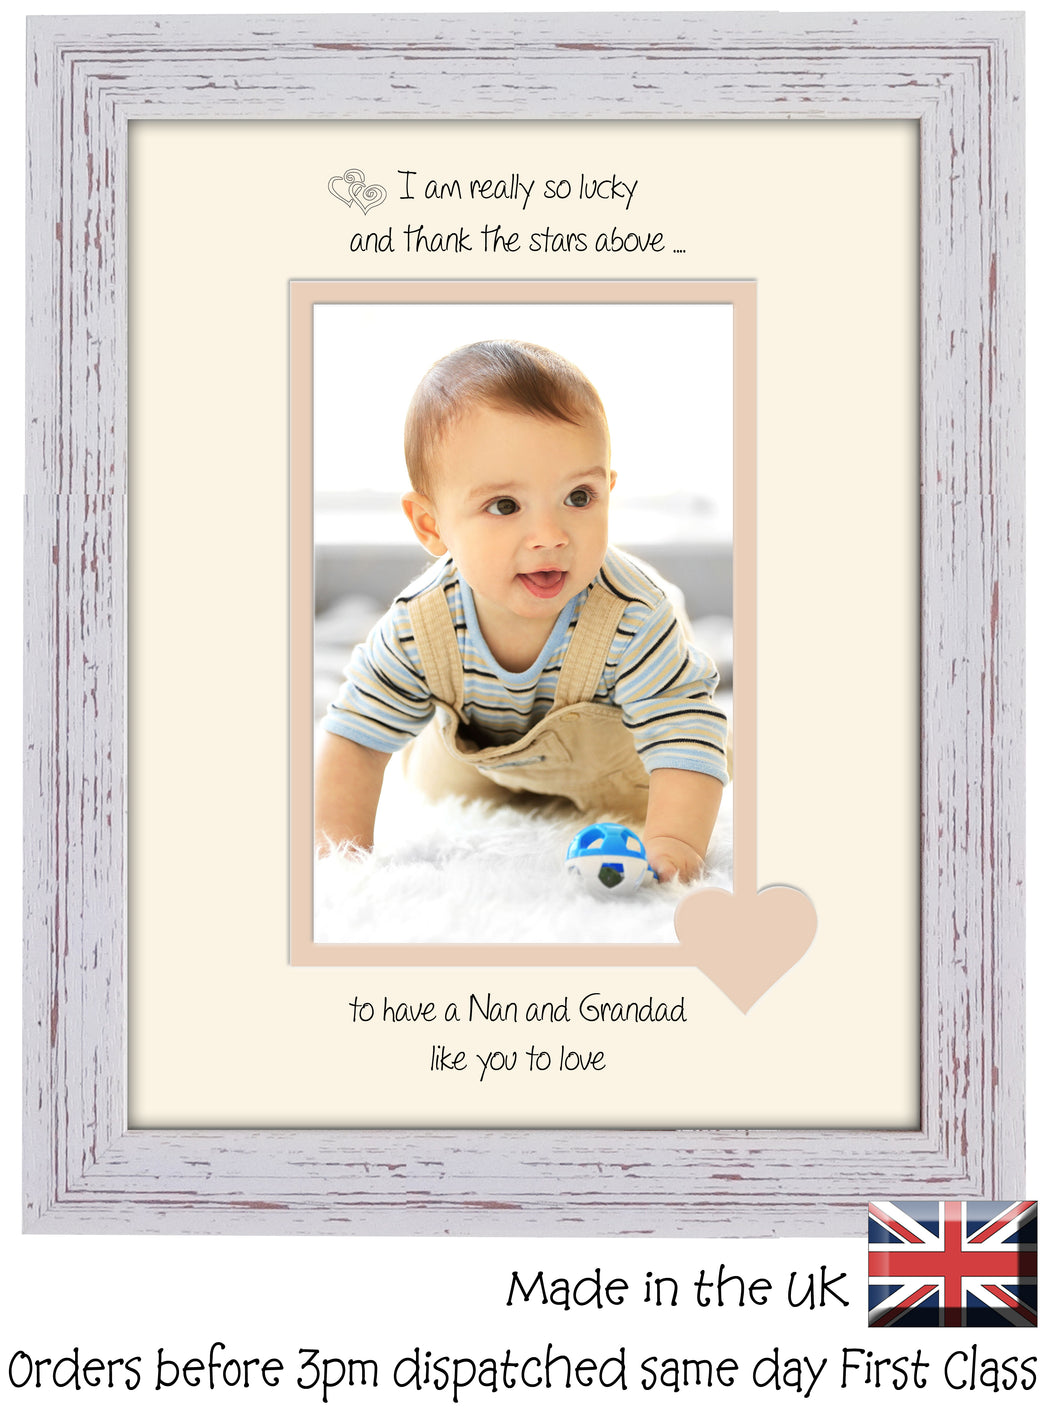 Nan & Grandad Photo Frame - I Thank the stars Nan & Grandad Portrait photo frame 6